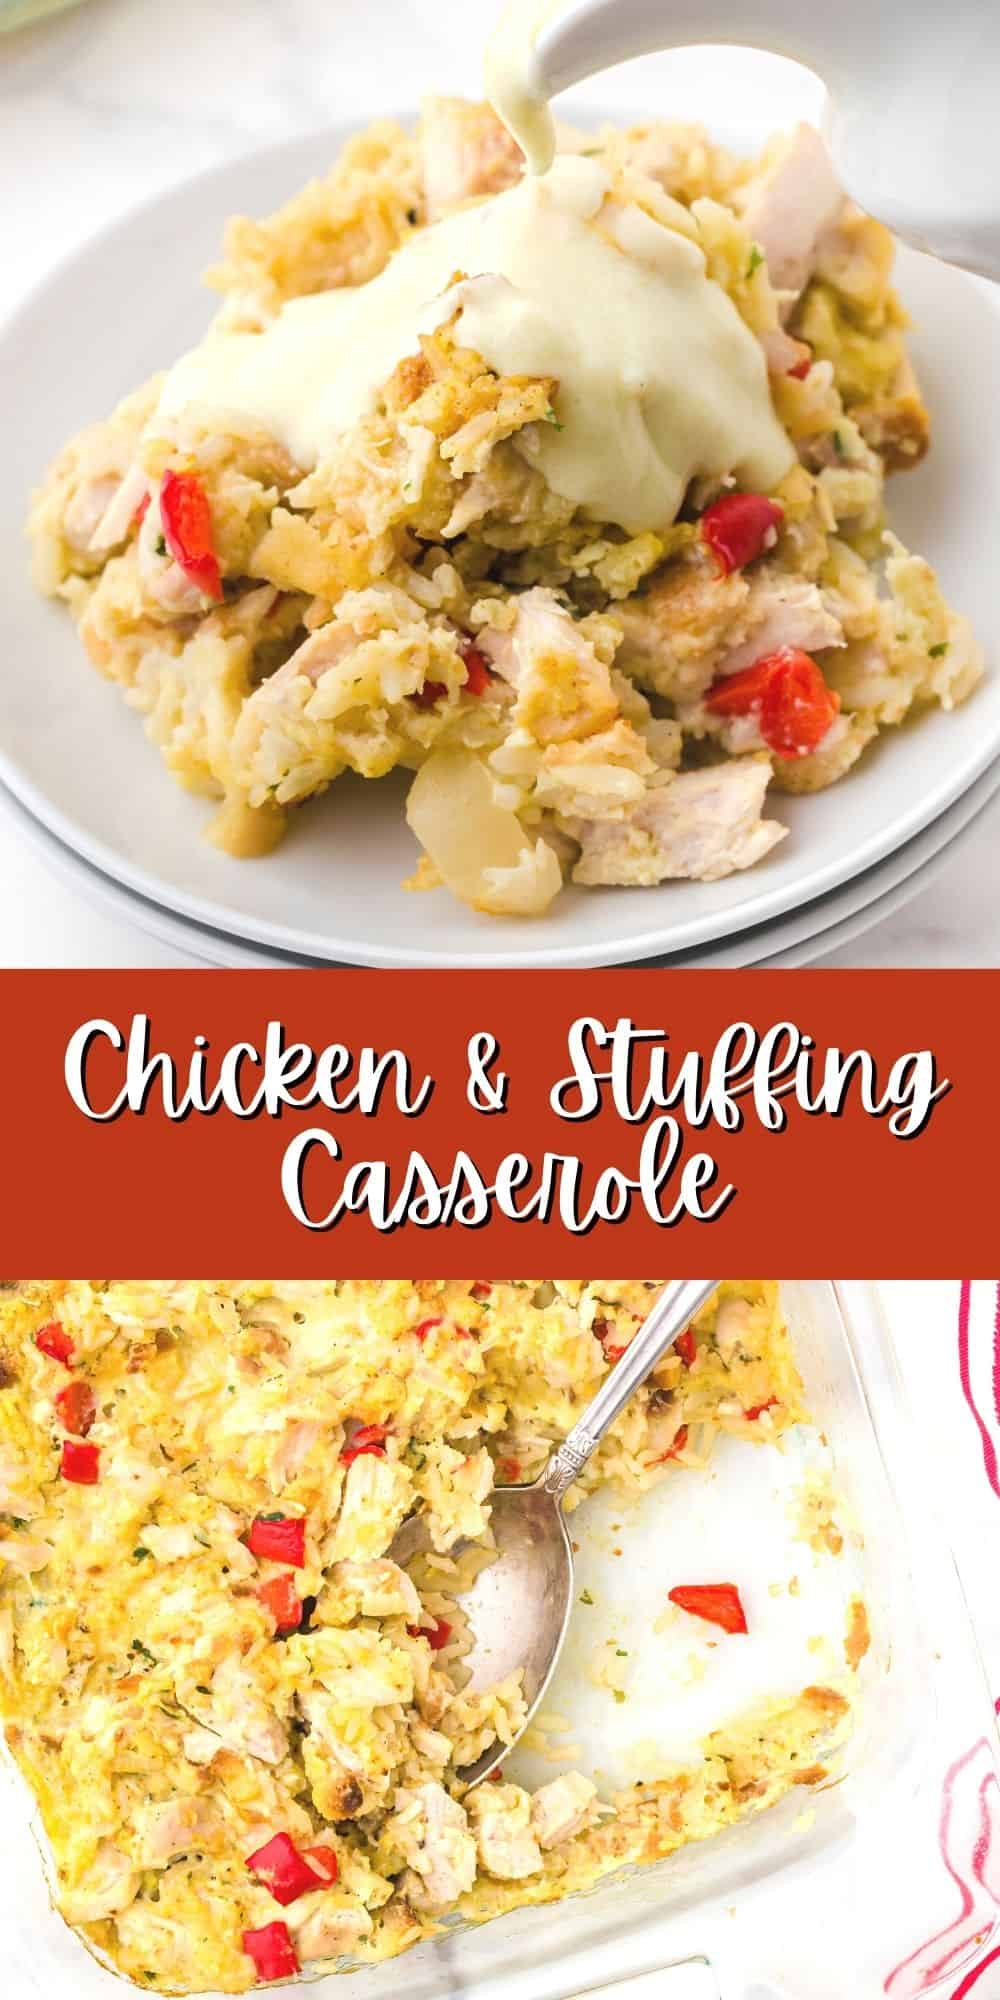 Chicken and Stuffing Casserole Recipe with rice and homemade sauce